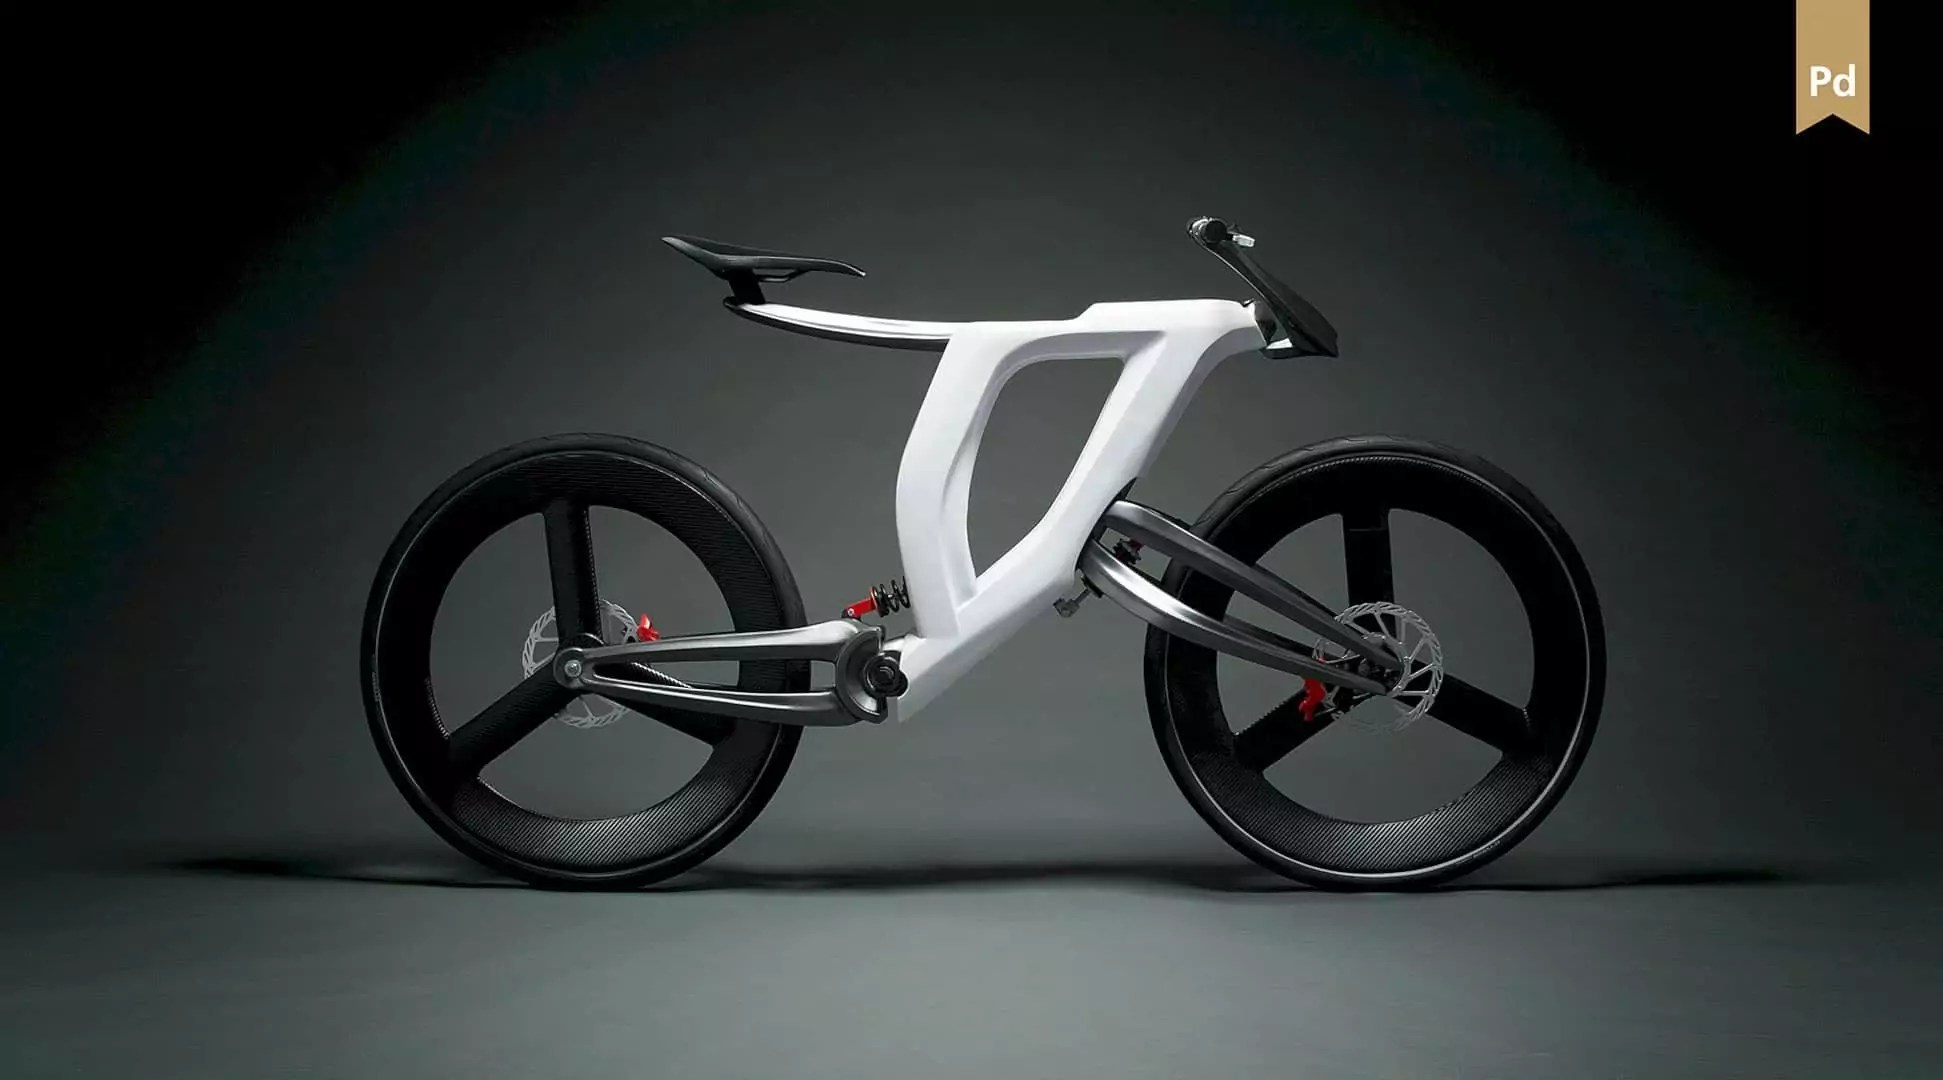 Furia: The Next Future of A Concept Bicycle Design